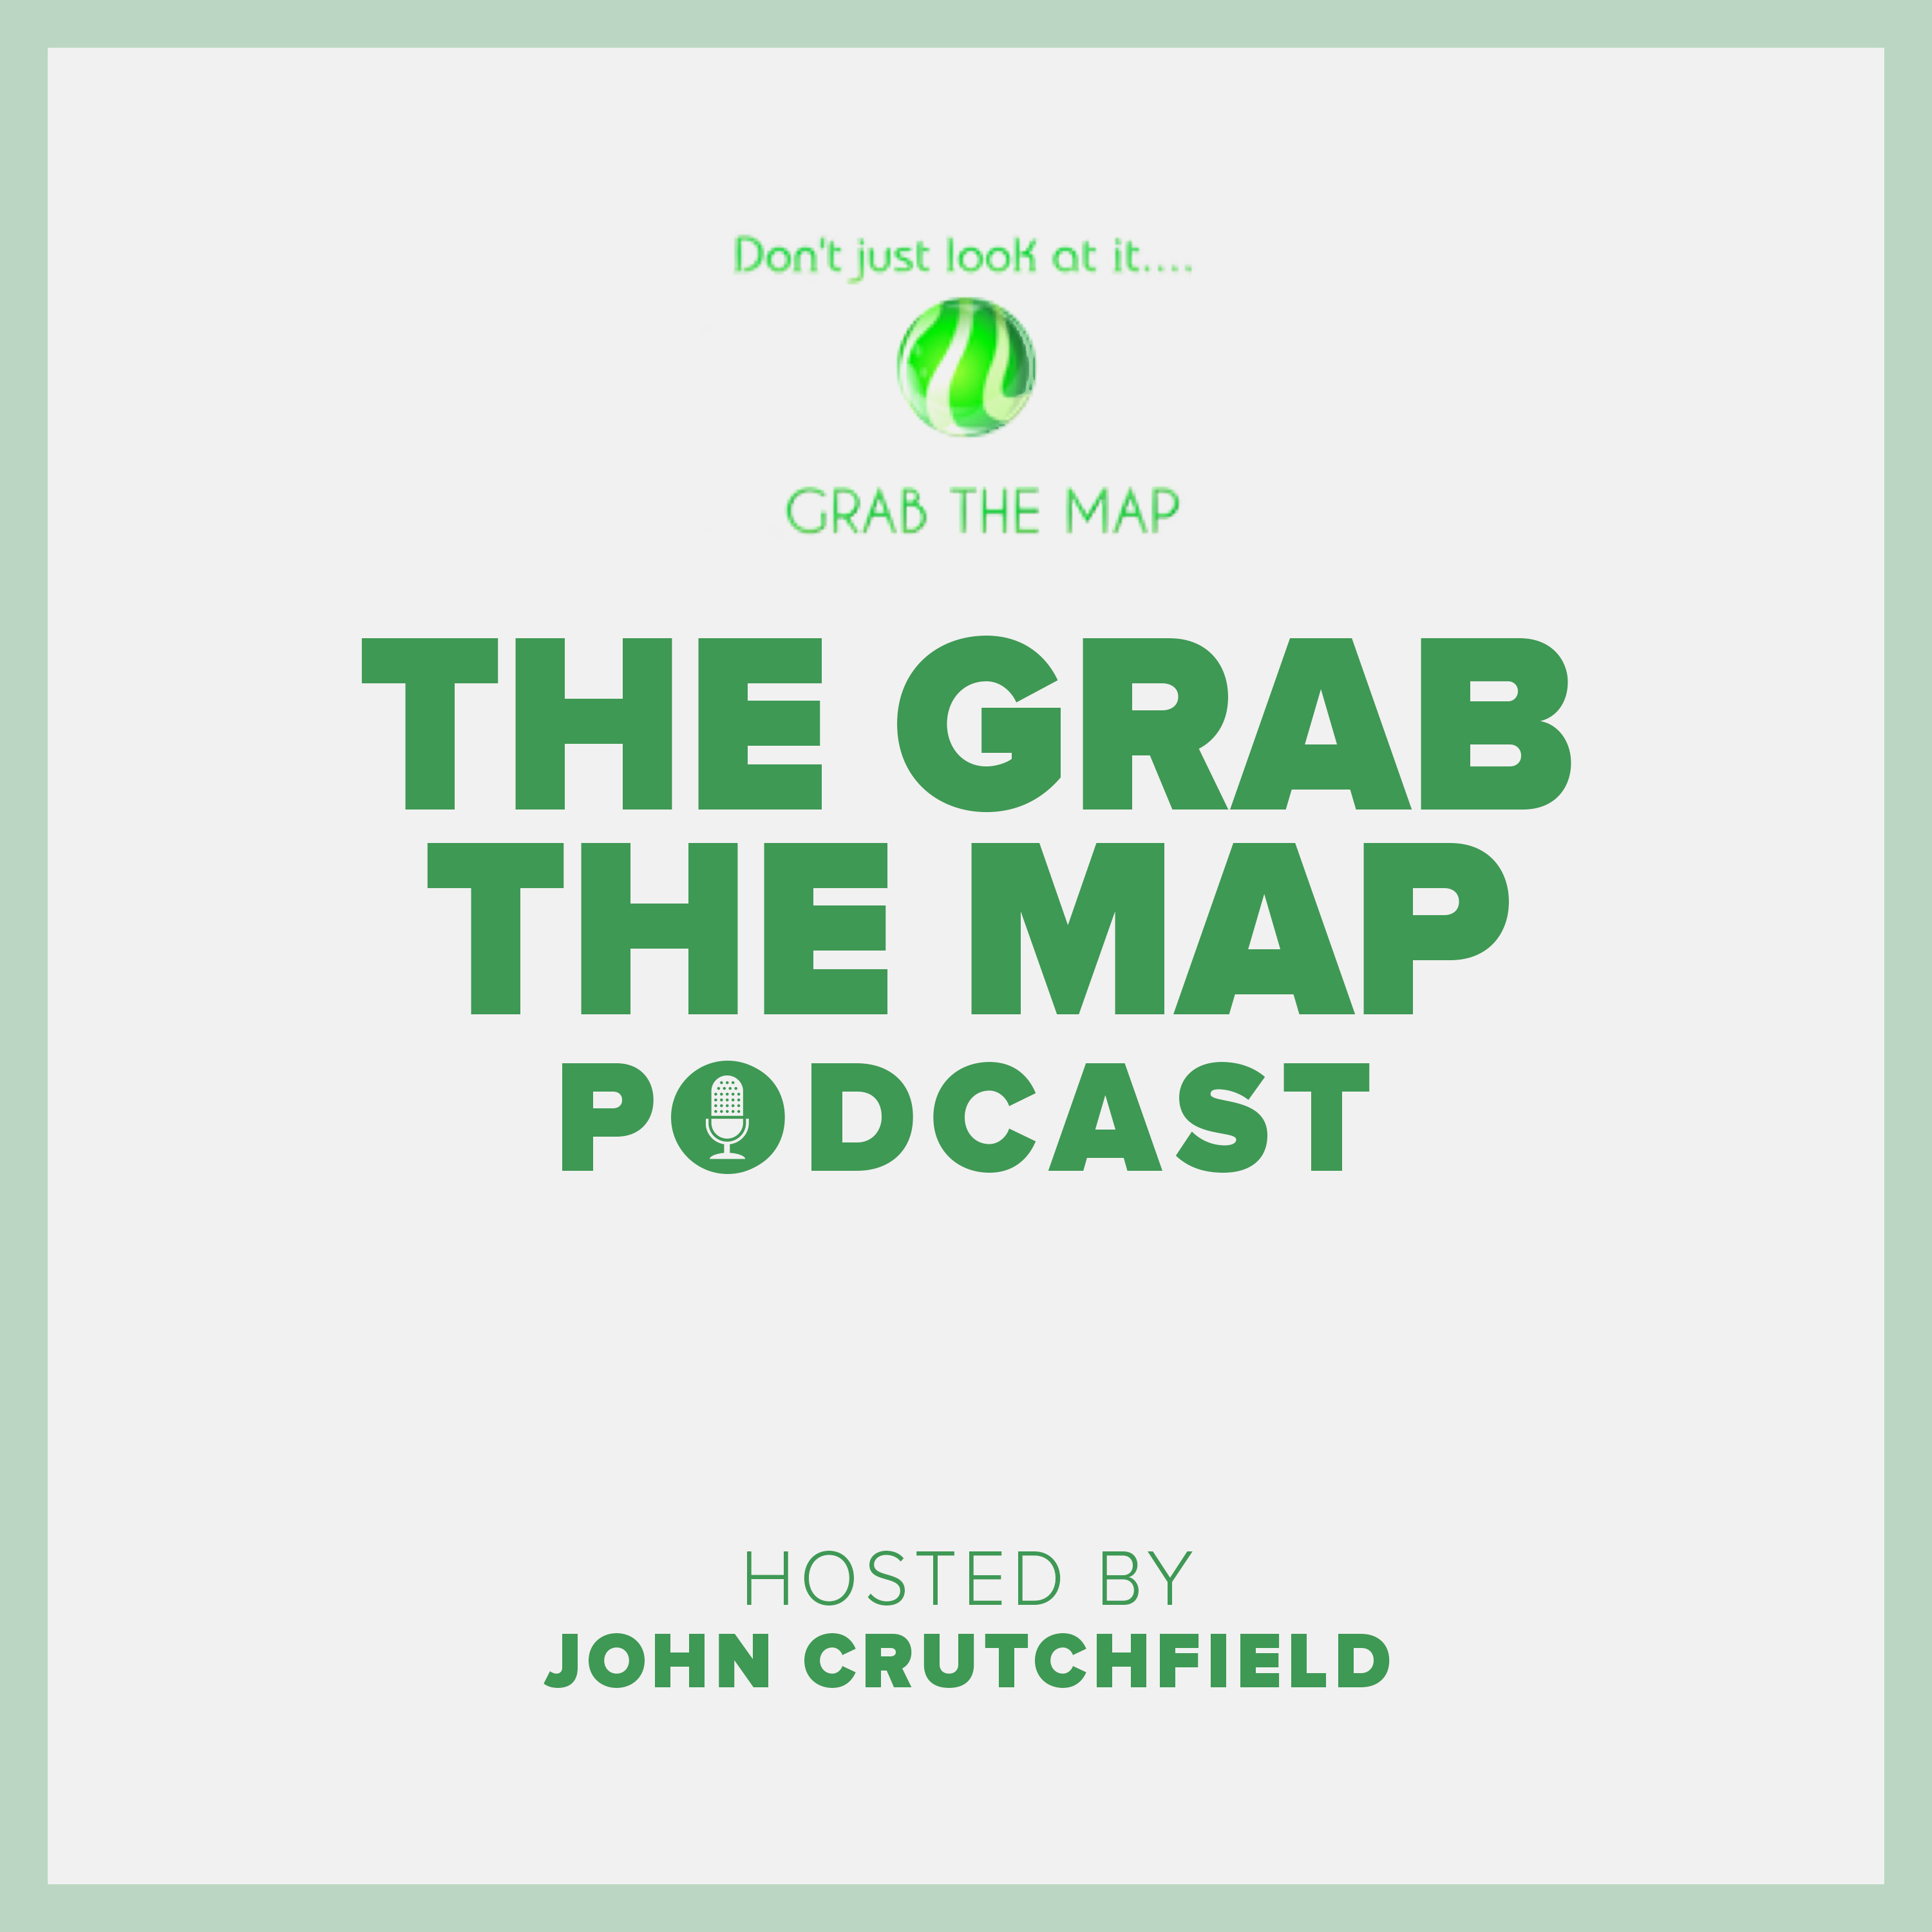 The Grab the Map Podcast: Real Estate Investing Info and Advice for All of Us